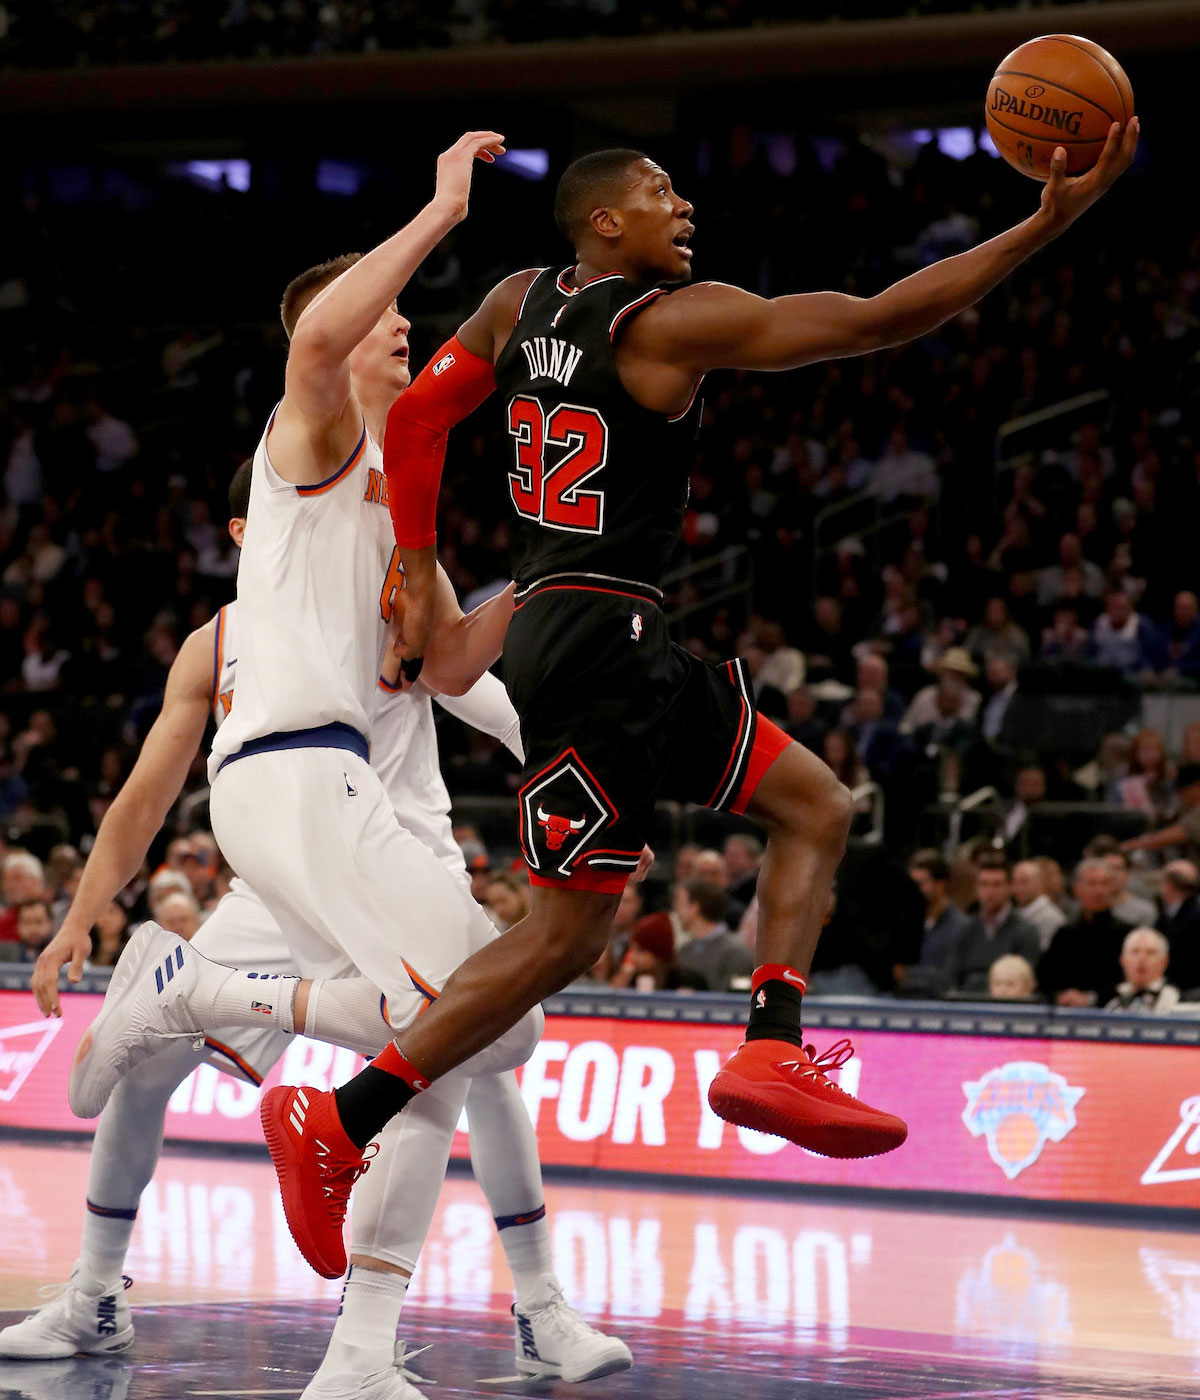 Kris Dunn moves to the basket.